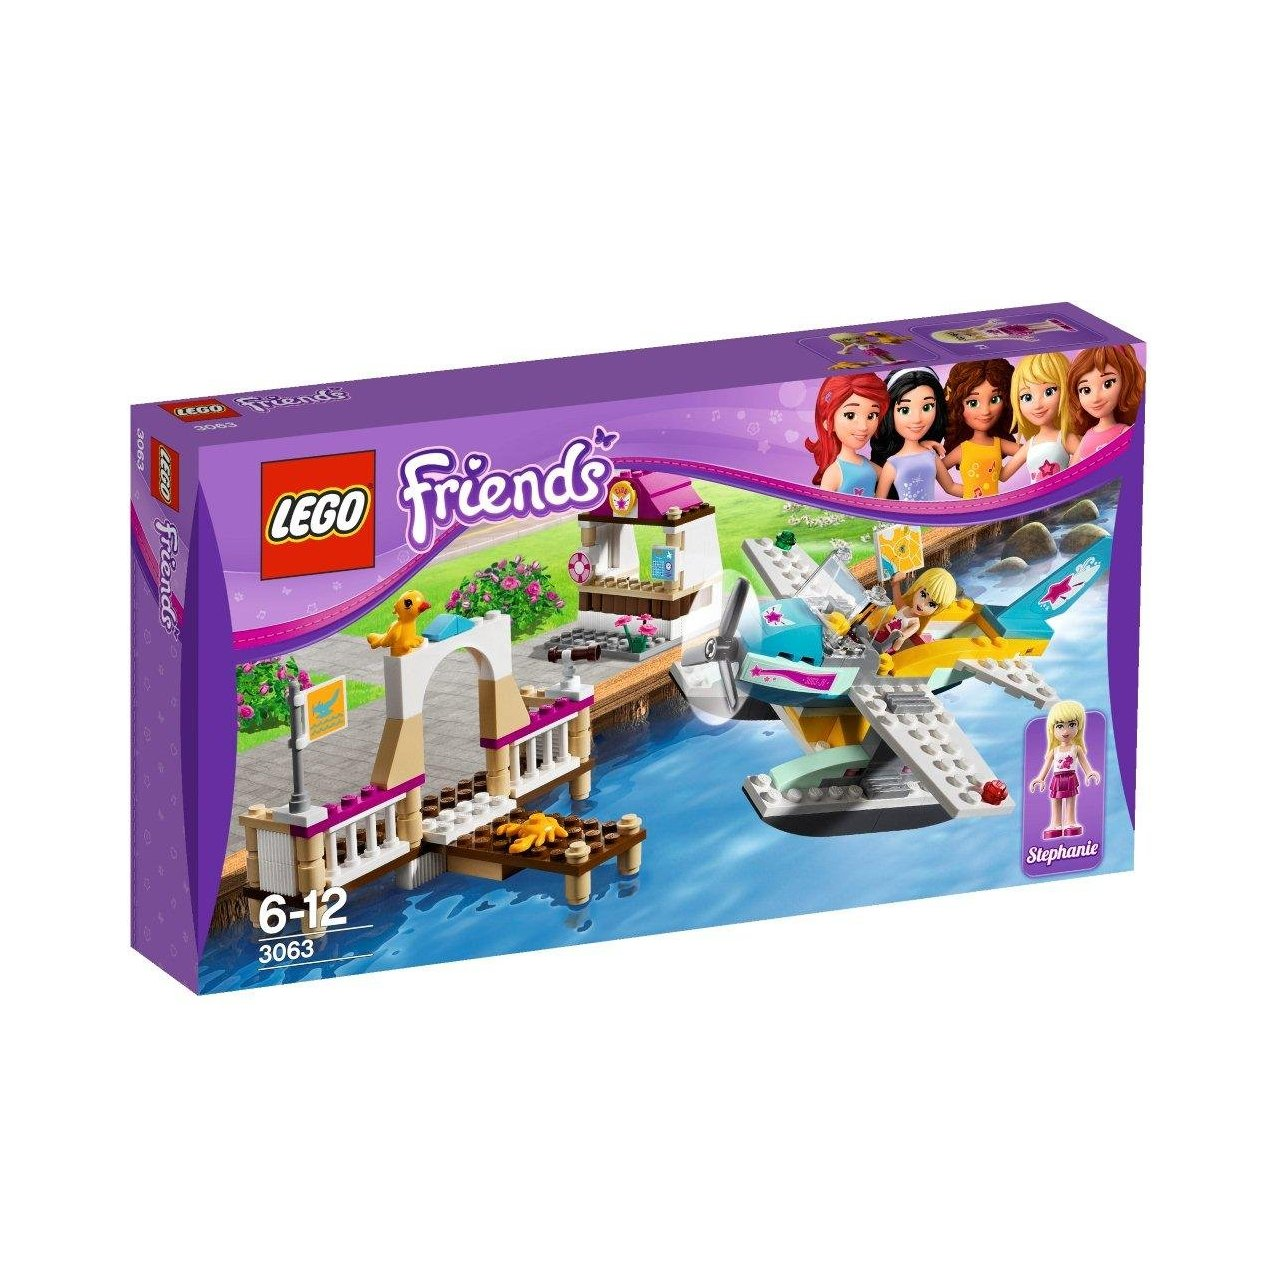 Movie Themed Home Decor Lego Friends Inspire Girls Globally Friends Sets 2012